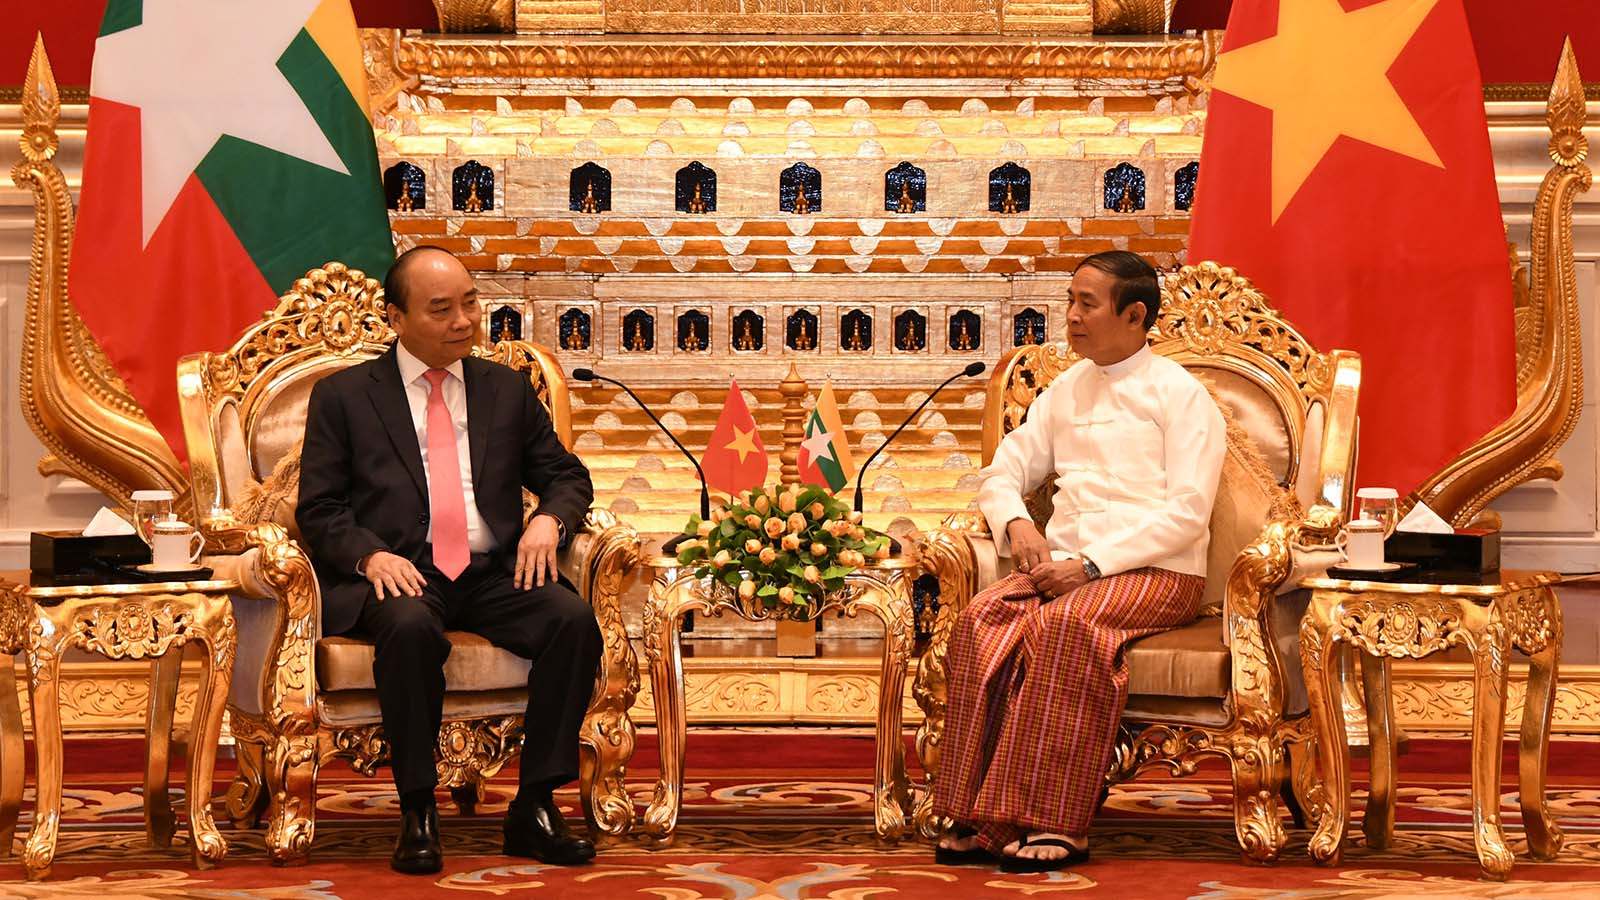 President U Win Myint holds talk with Prime Minister Nguyen Xuan Phuc of the Socialist Republic of Viet Nam at the Presidential Palace in Nay Pyi Taw yesterday. Photo: MNA